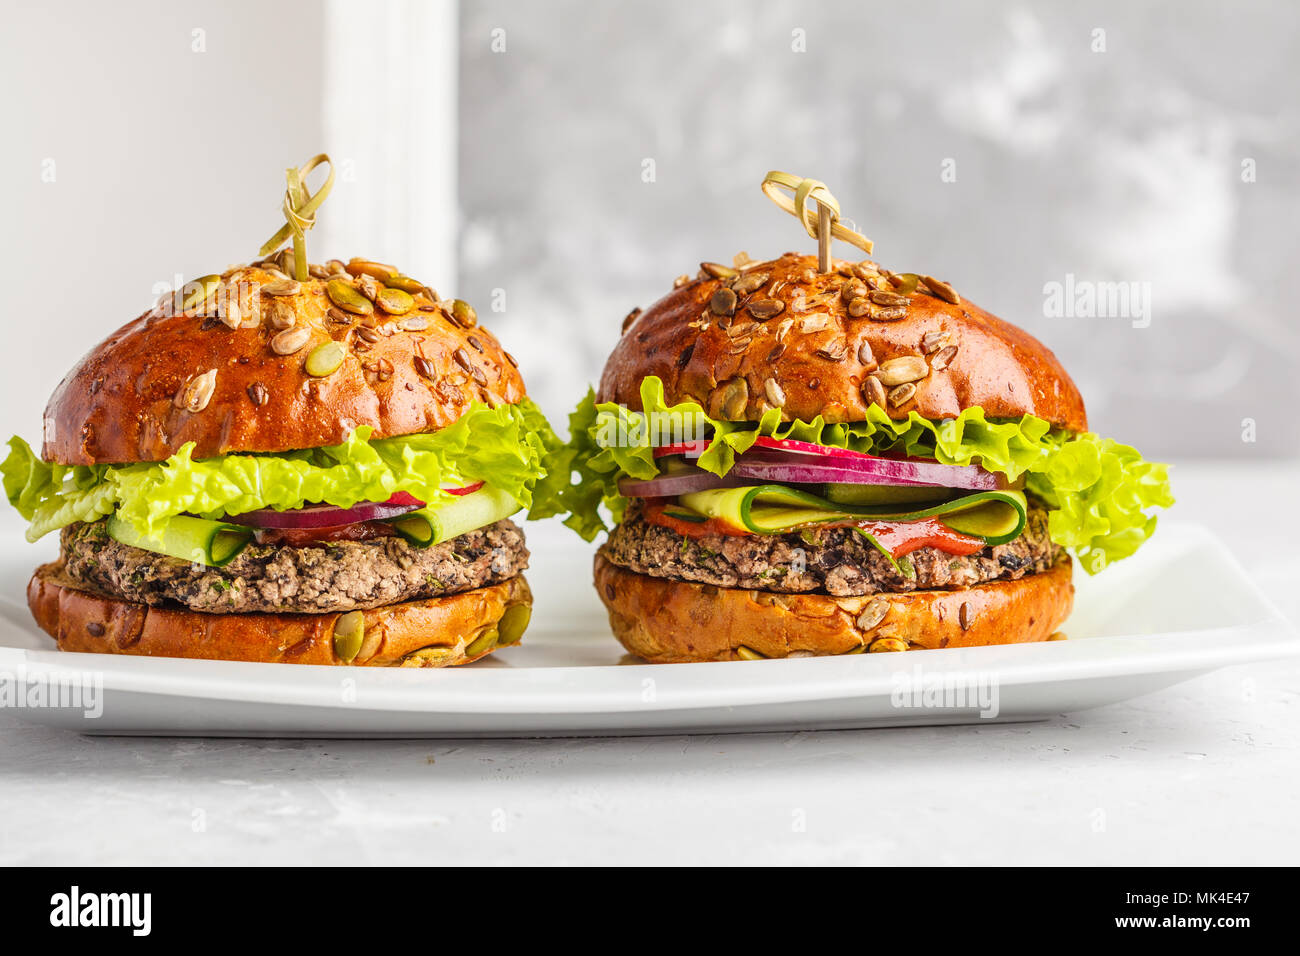 Vegan bean burgers with vegetables and tomato sauce on white dish, copy space. Healthy vegan food concept. Stock Photo